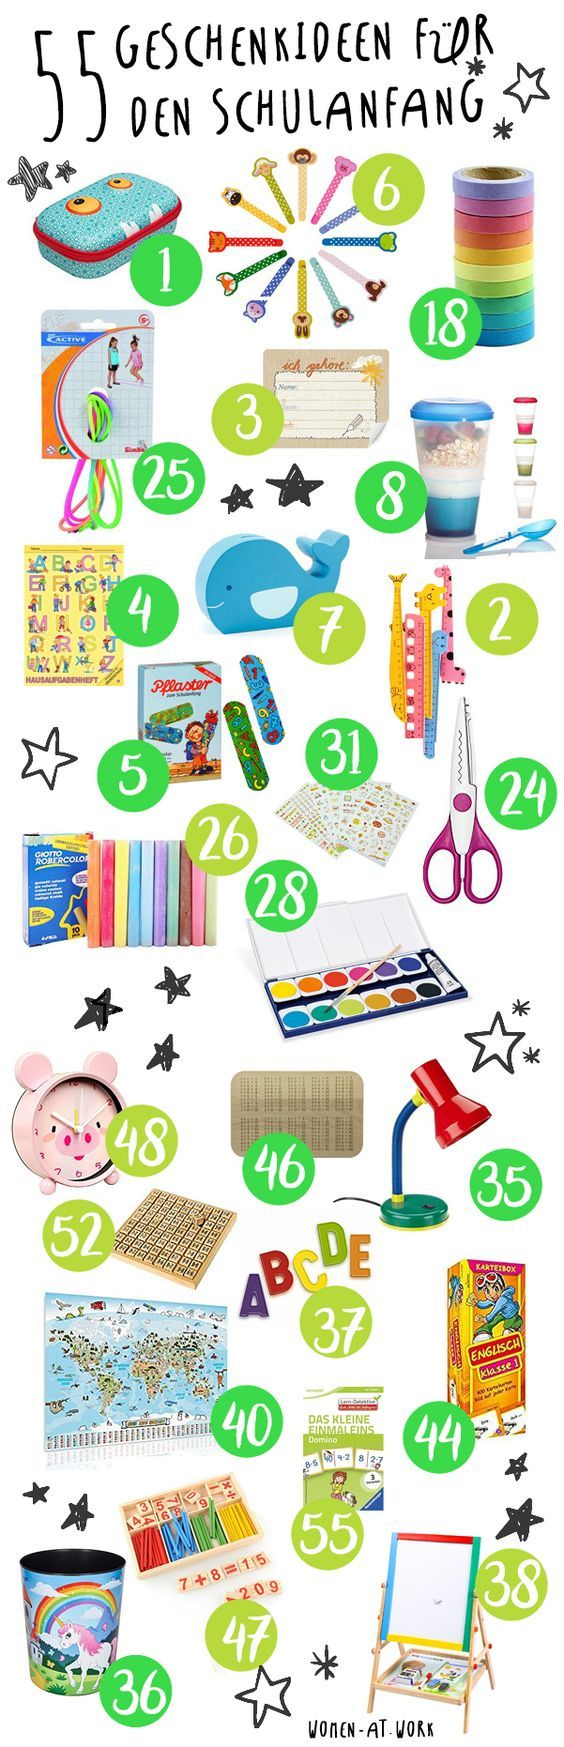 55 gift ideas for the beginning of school and the school bag